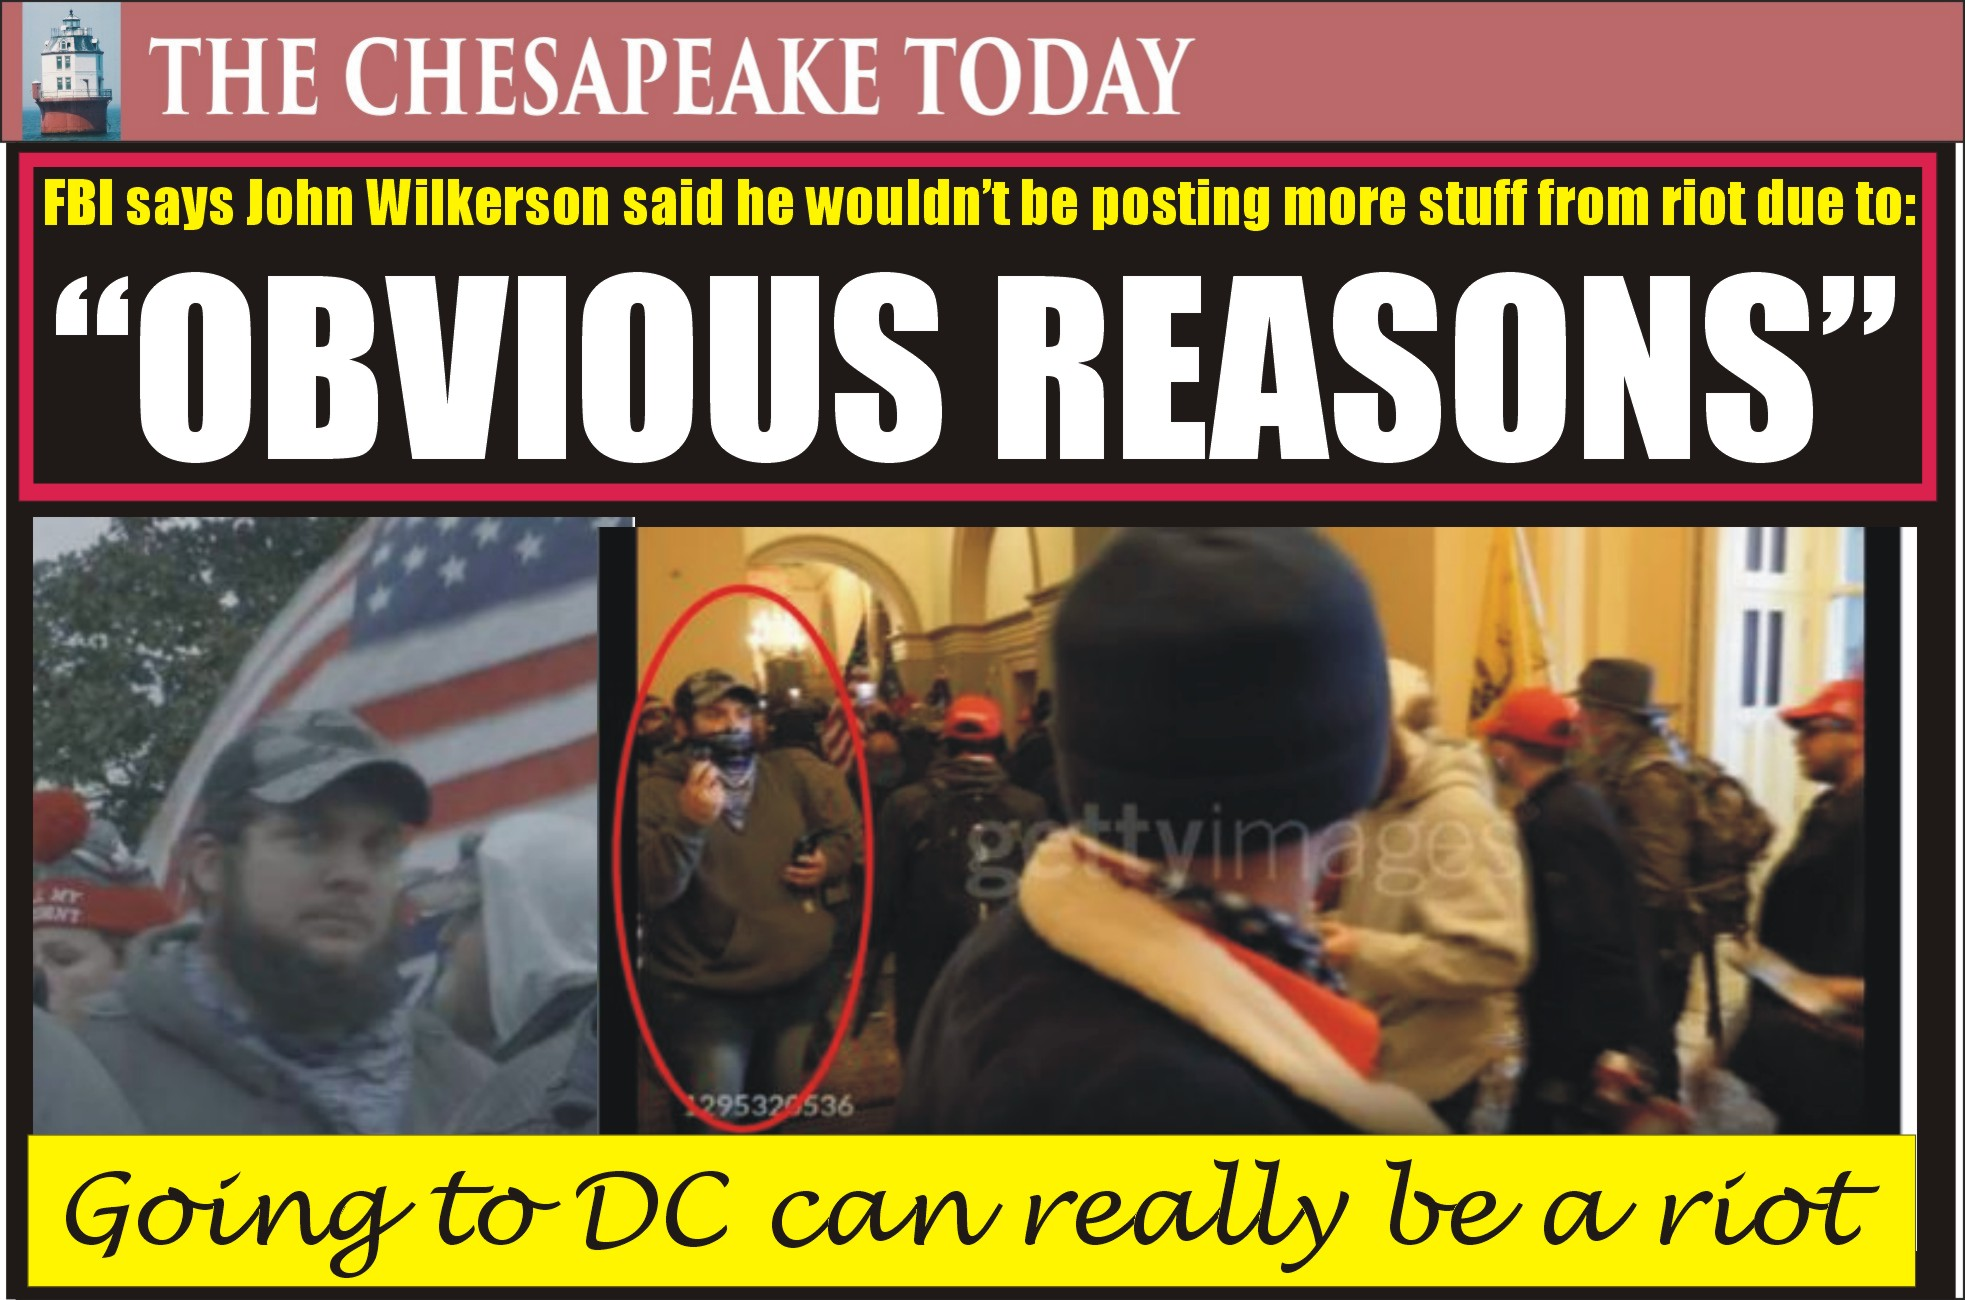 CAPITOL RIOT: JOHN WILKERSON IV CHARGED WITH BEING PART OF CAPITOL MOB